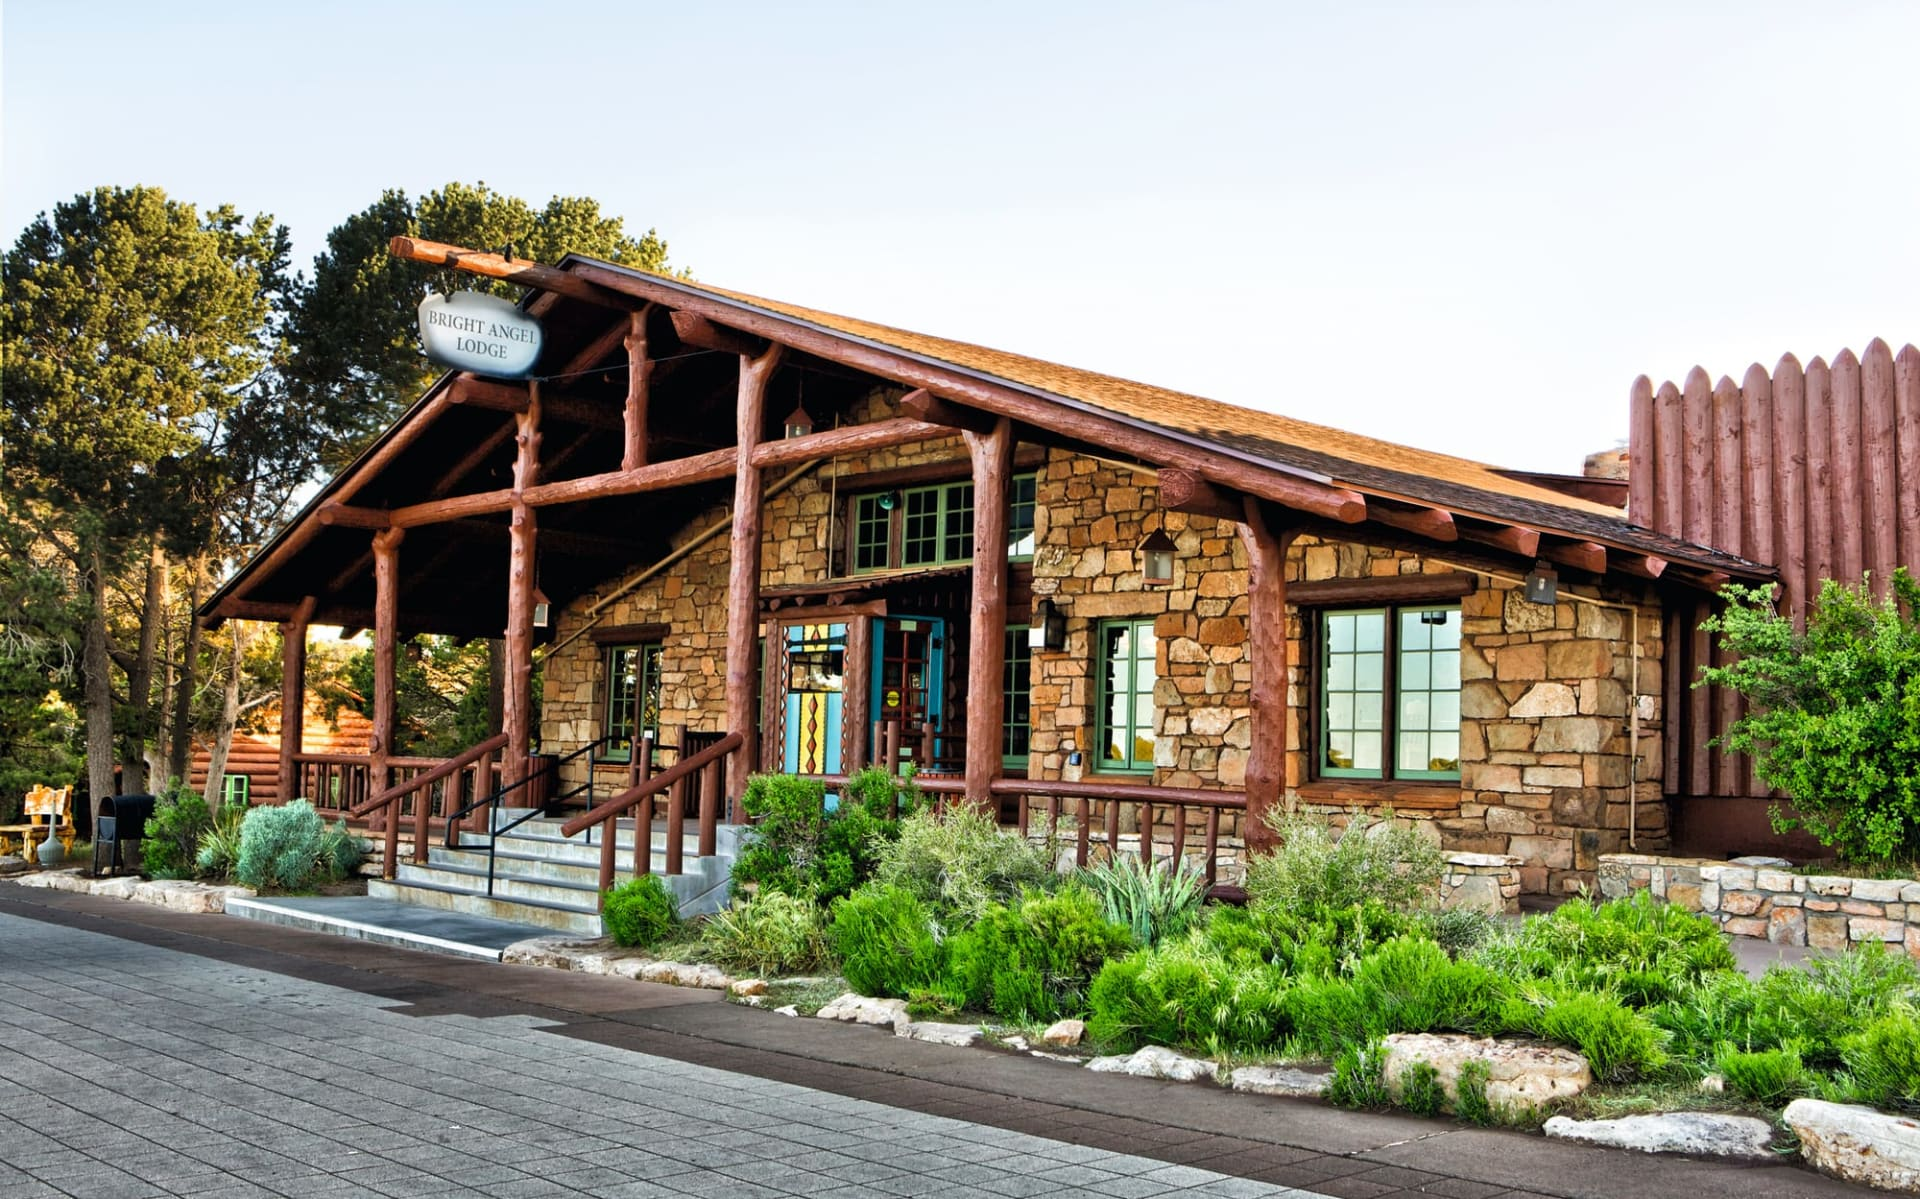 Bright Angel Lodge in Grand Canyon Nationalpark:  Bright Angel Lodge_Aussenansicht_RMHT